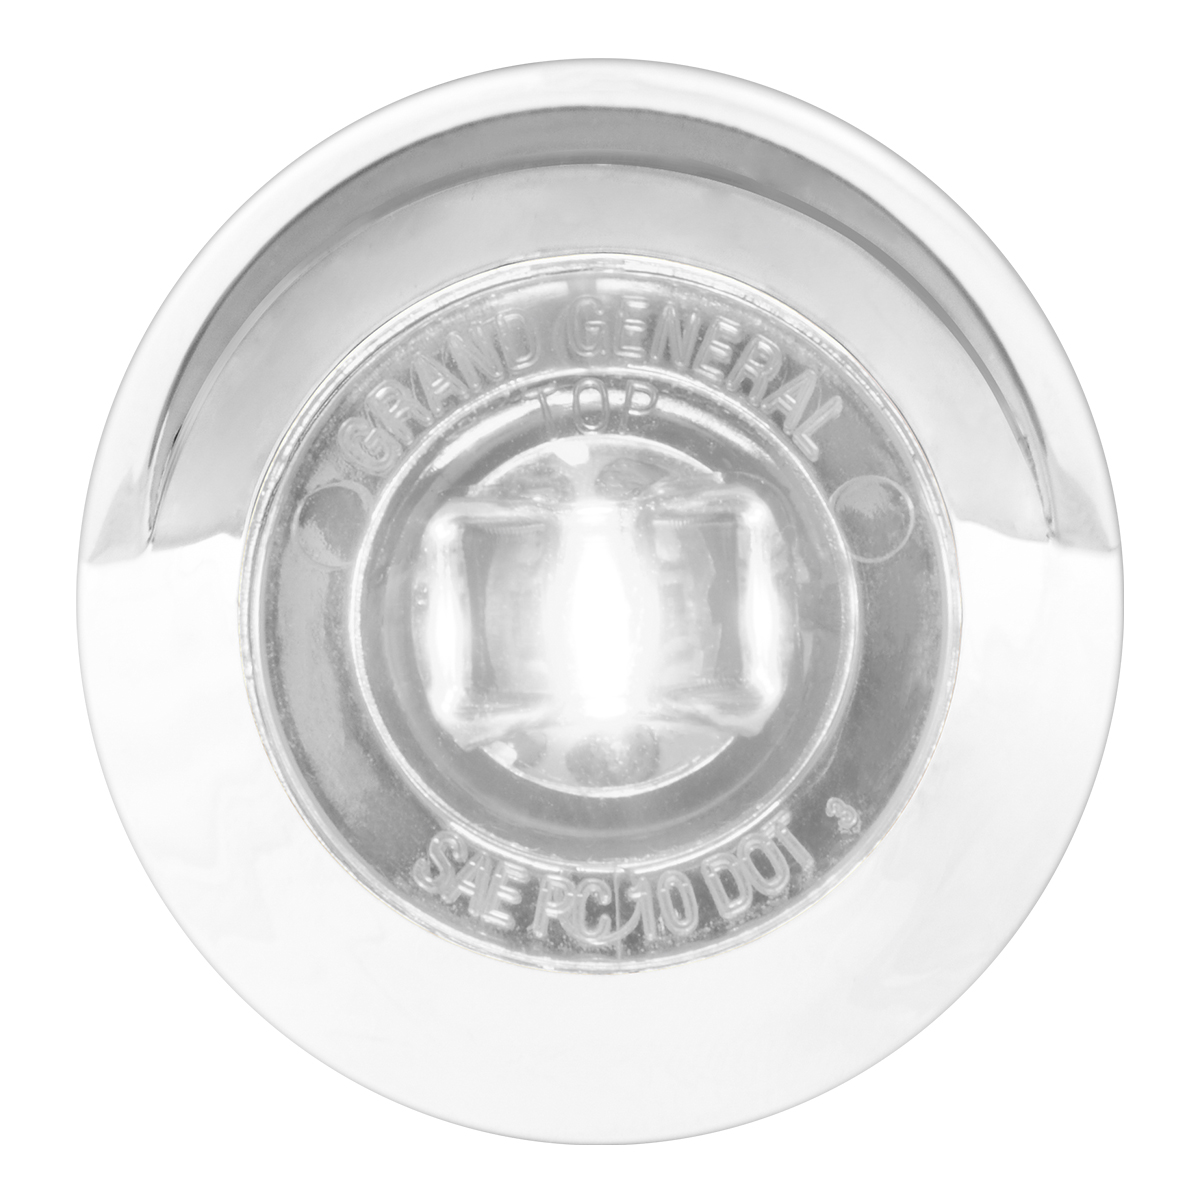 "75254 1"" Dia. Mini Push/Screw-in Wide Angle LED Marker Light w/ Chrome Bezel & Visor"